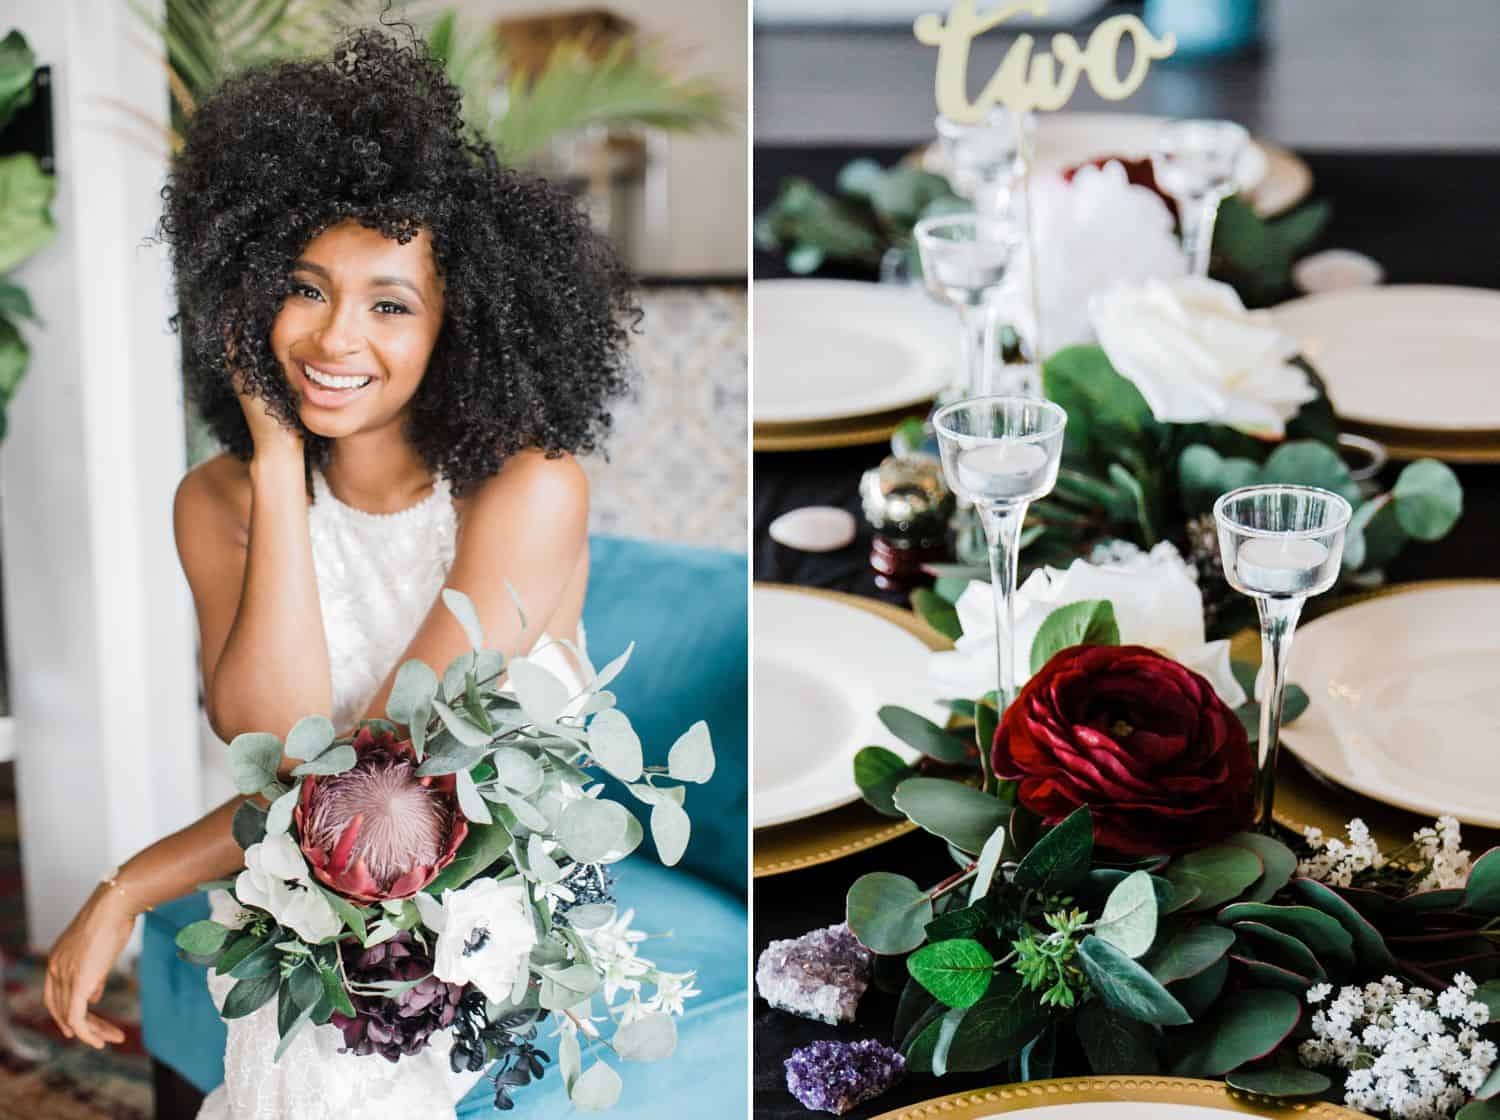 Find and book more weddings this season with our easy, actionable tips for professional photographers. Your clients will thank you!